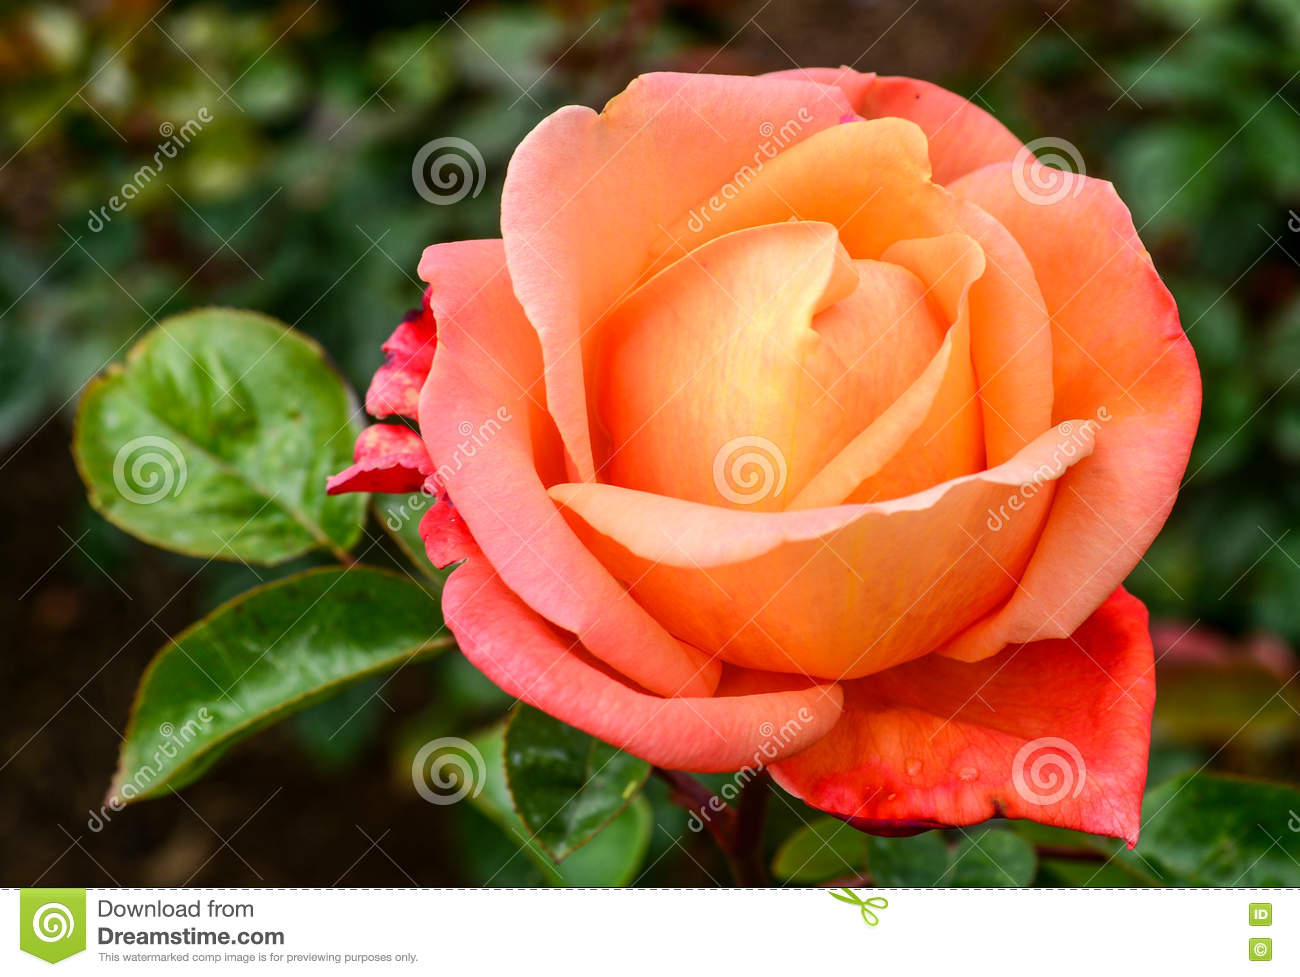 Orange Pinkish Rose Flowers In Spring Stock Photo Image Of Bunch